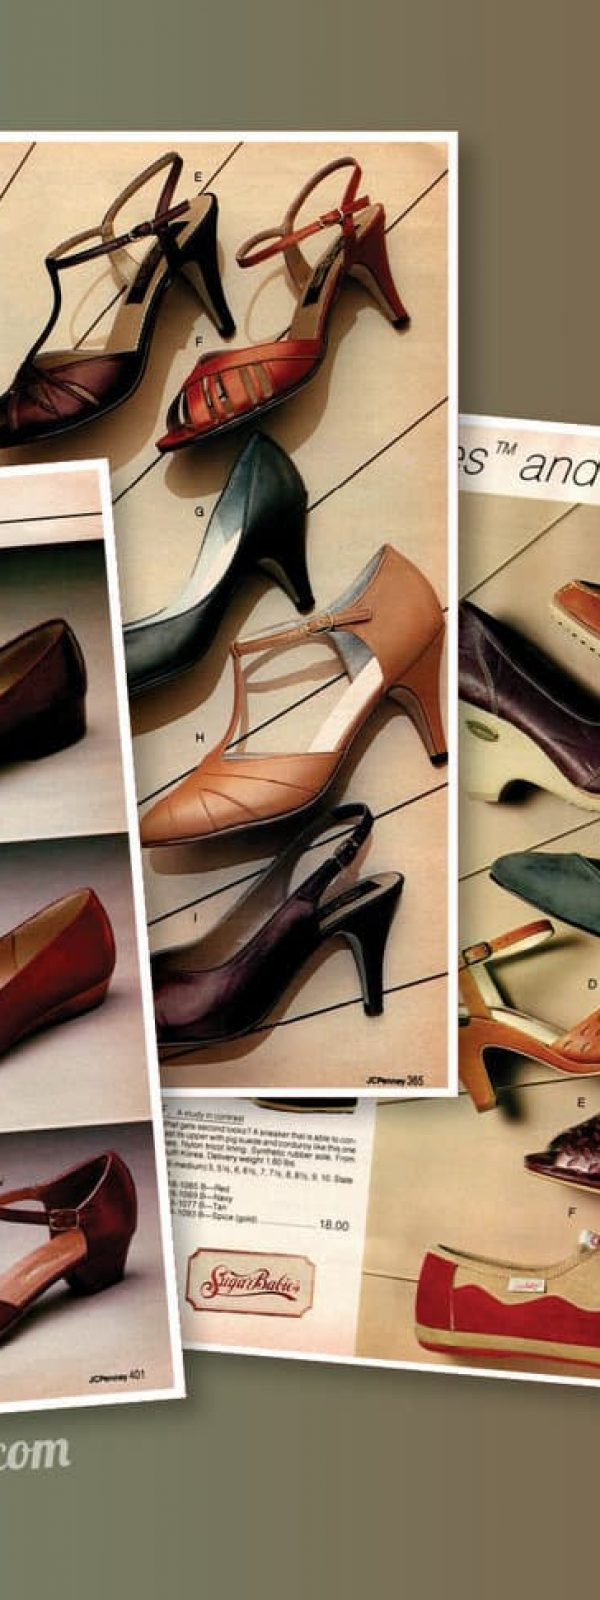 3d1b128860 Trendy '80s women's shoes from the 1983 JC Penney catalog - Click Americana